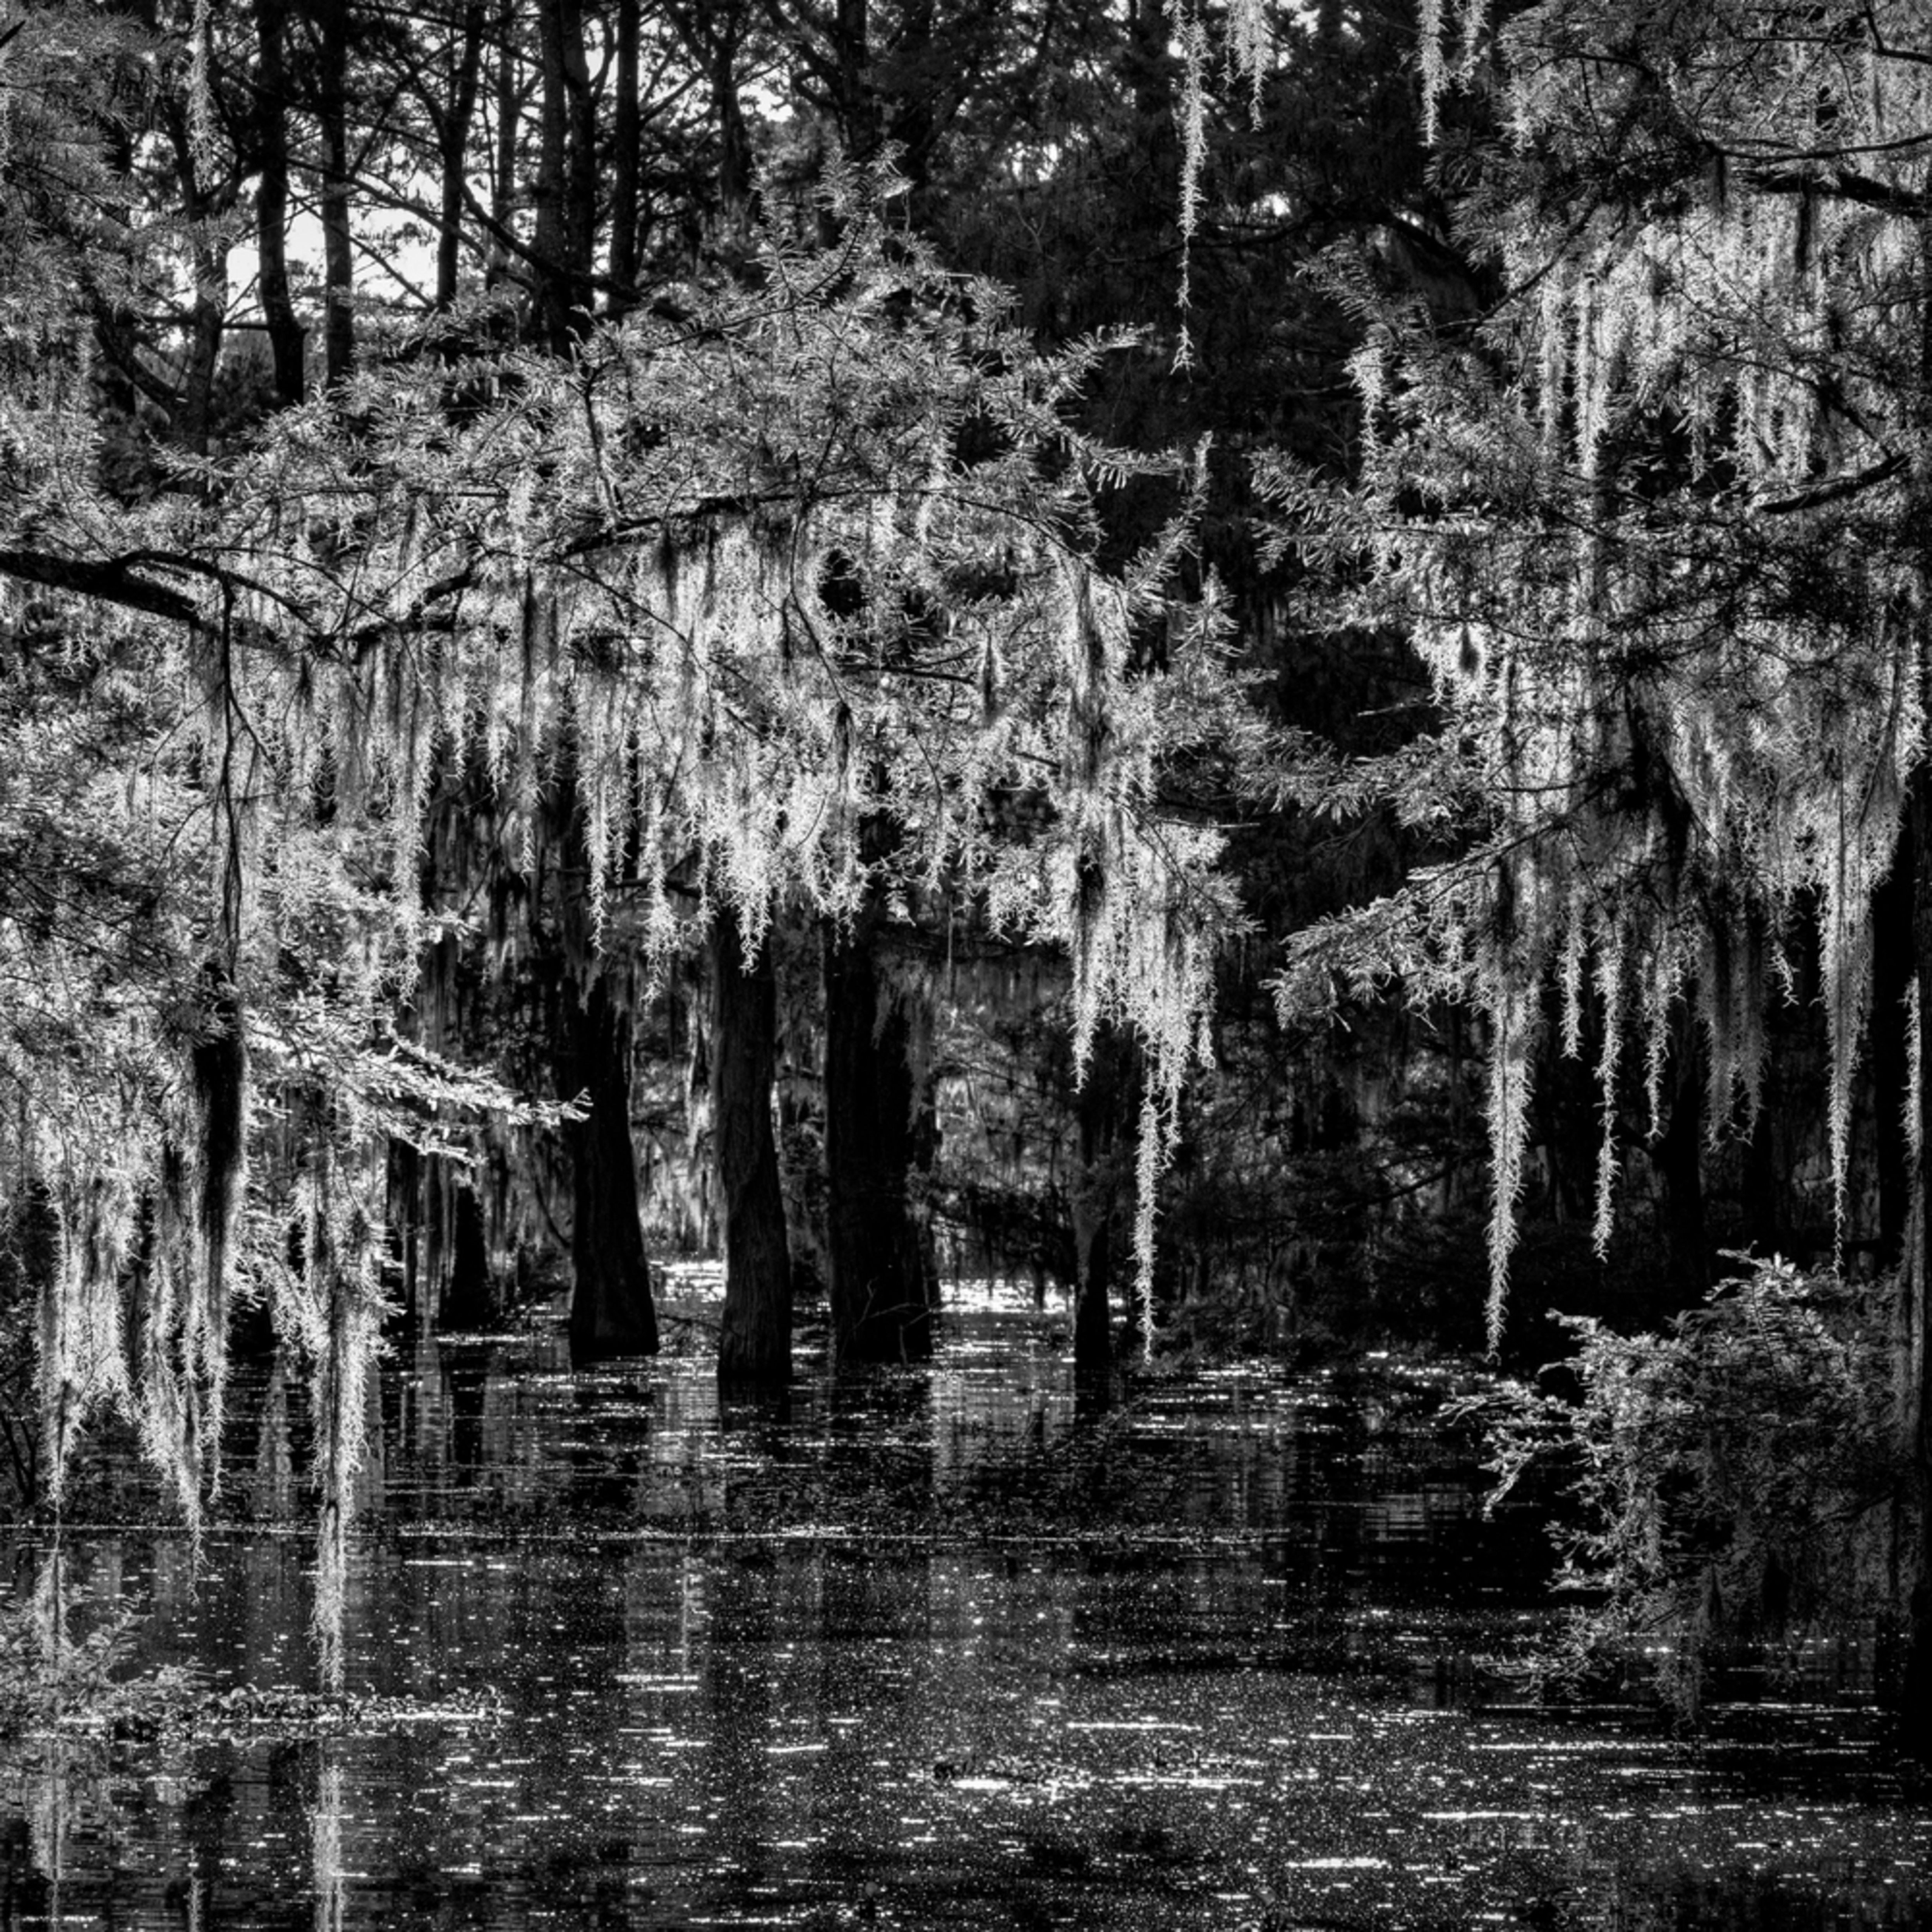 Andy crawford photography into the garden of light and darkness henderson swamp g9itbn